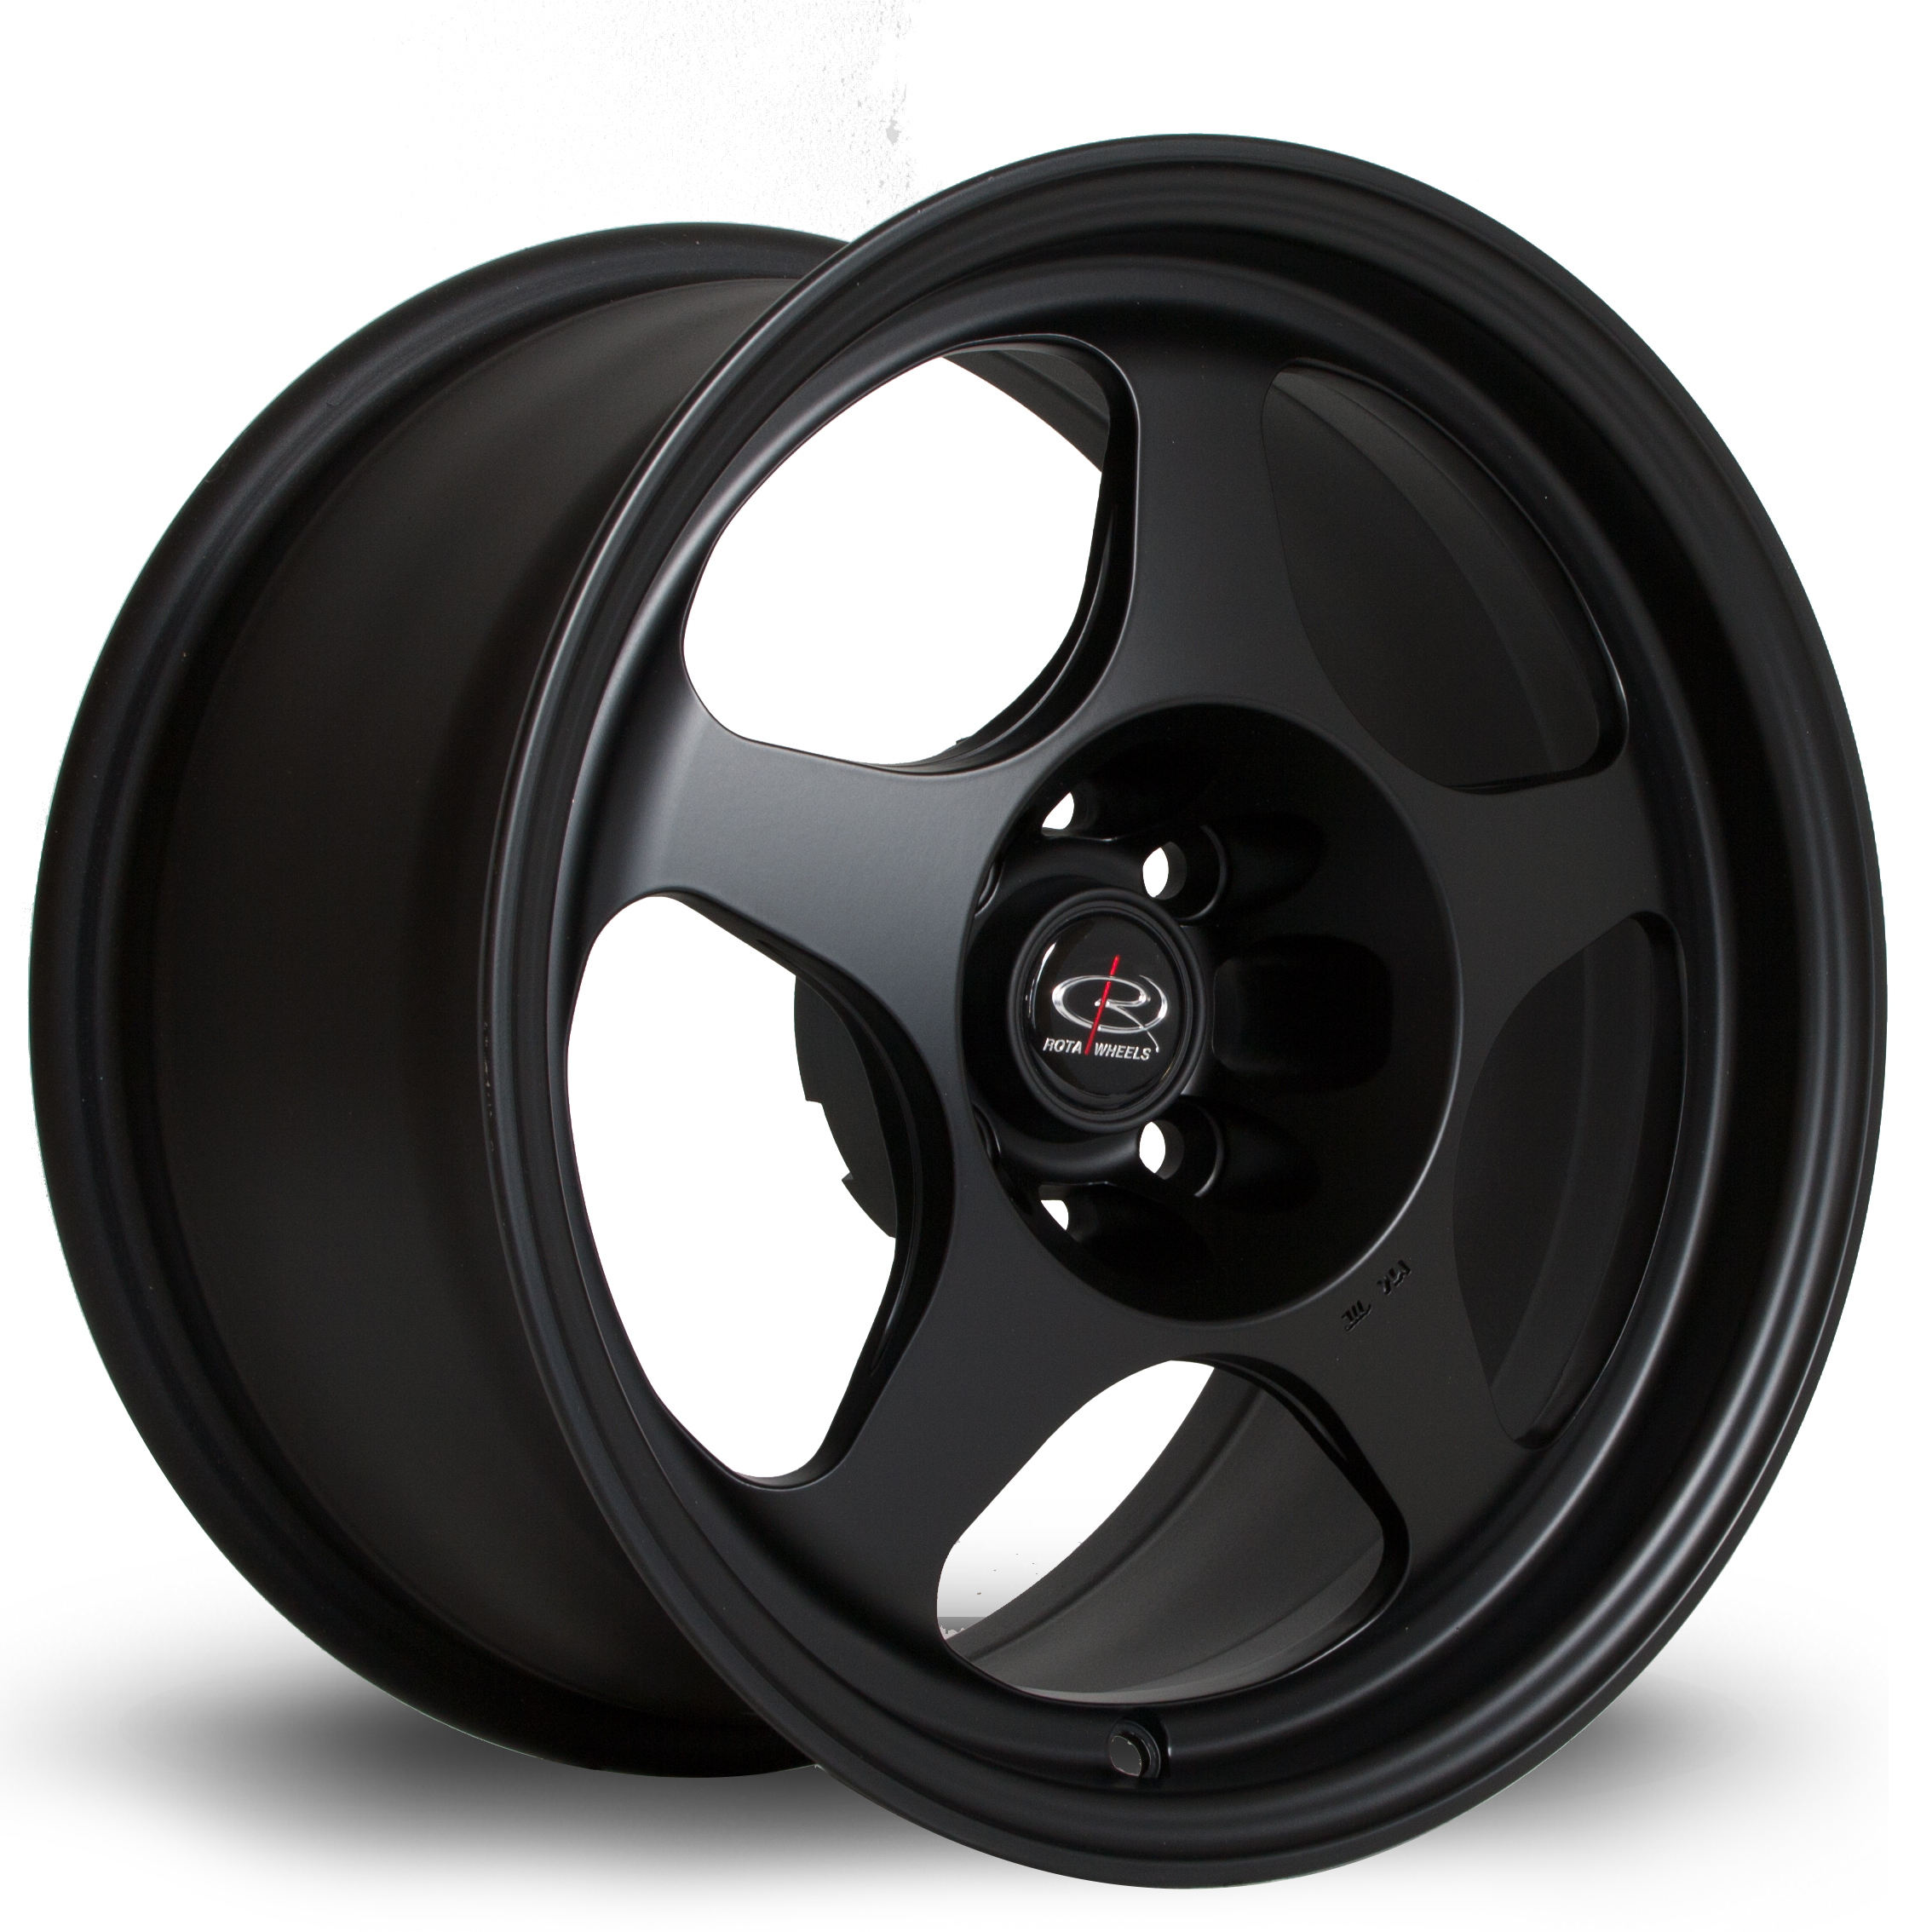 ROTA SLIPSTREAM 8x15 4x108 ET25 FLAT BLACK